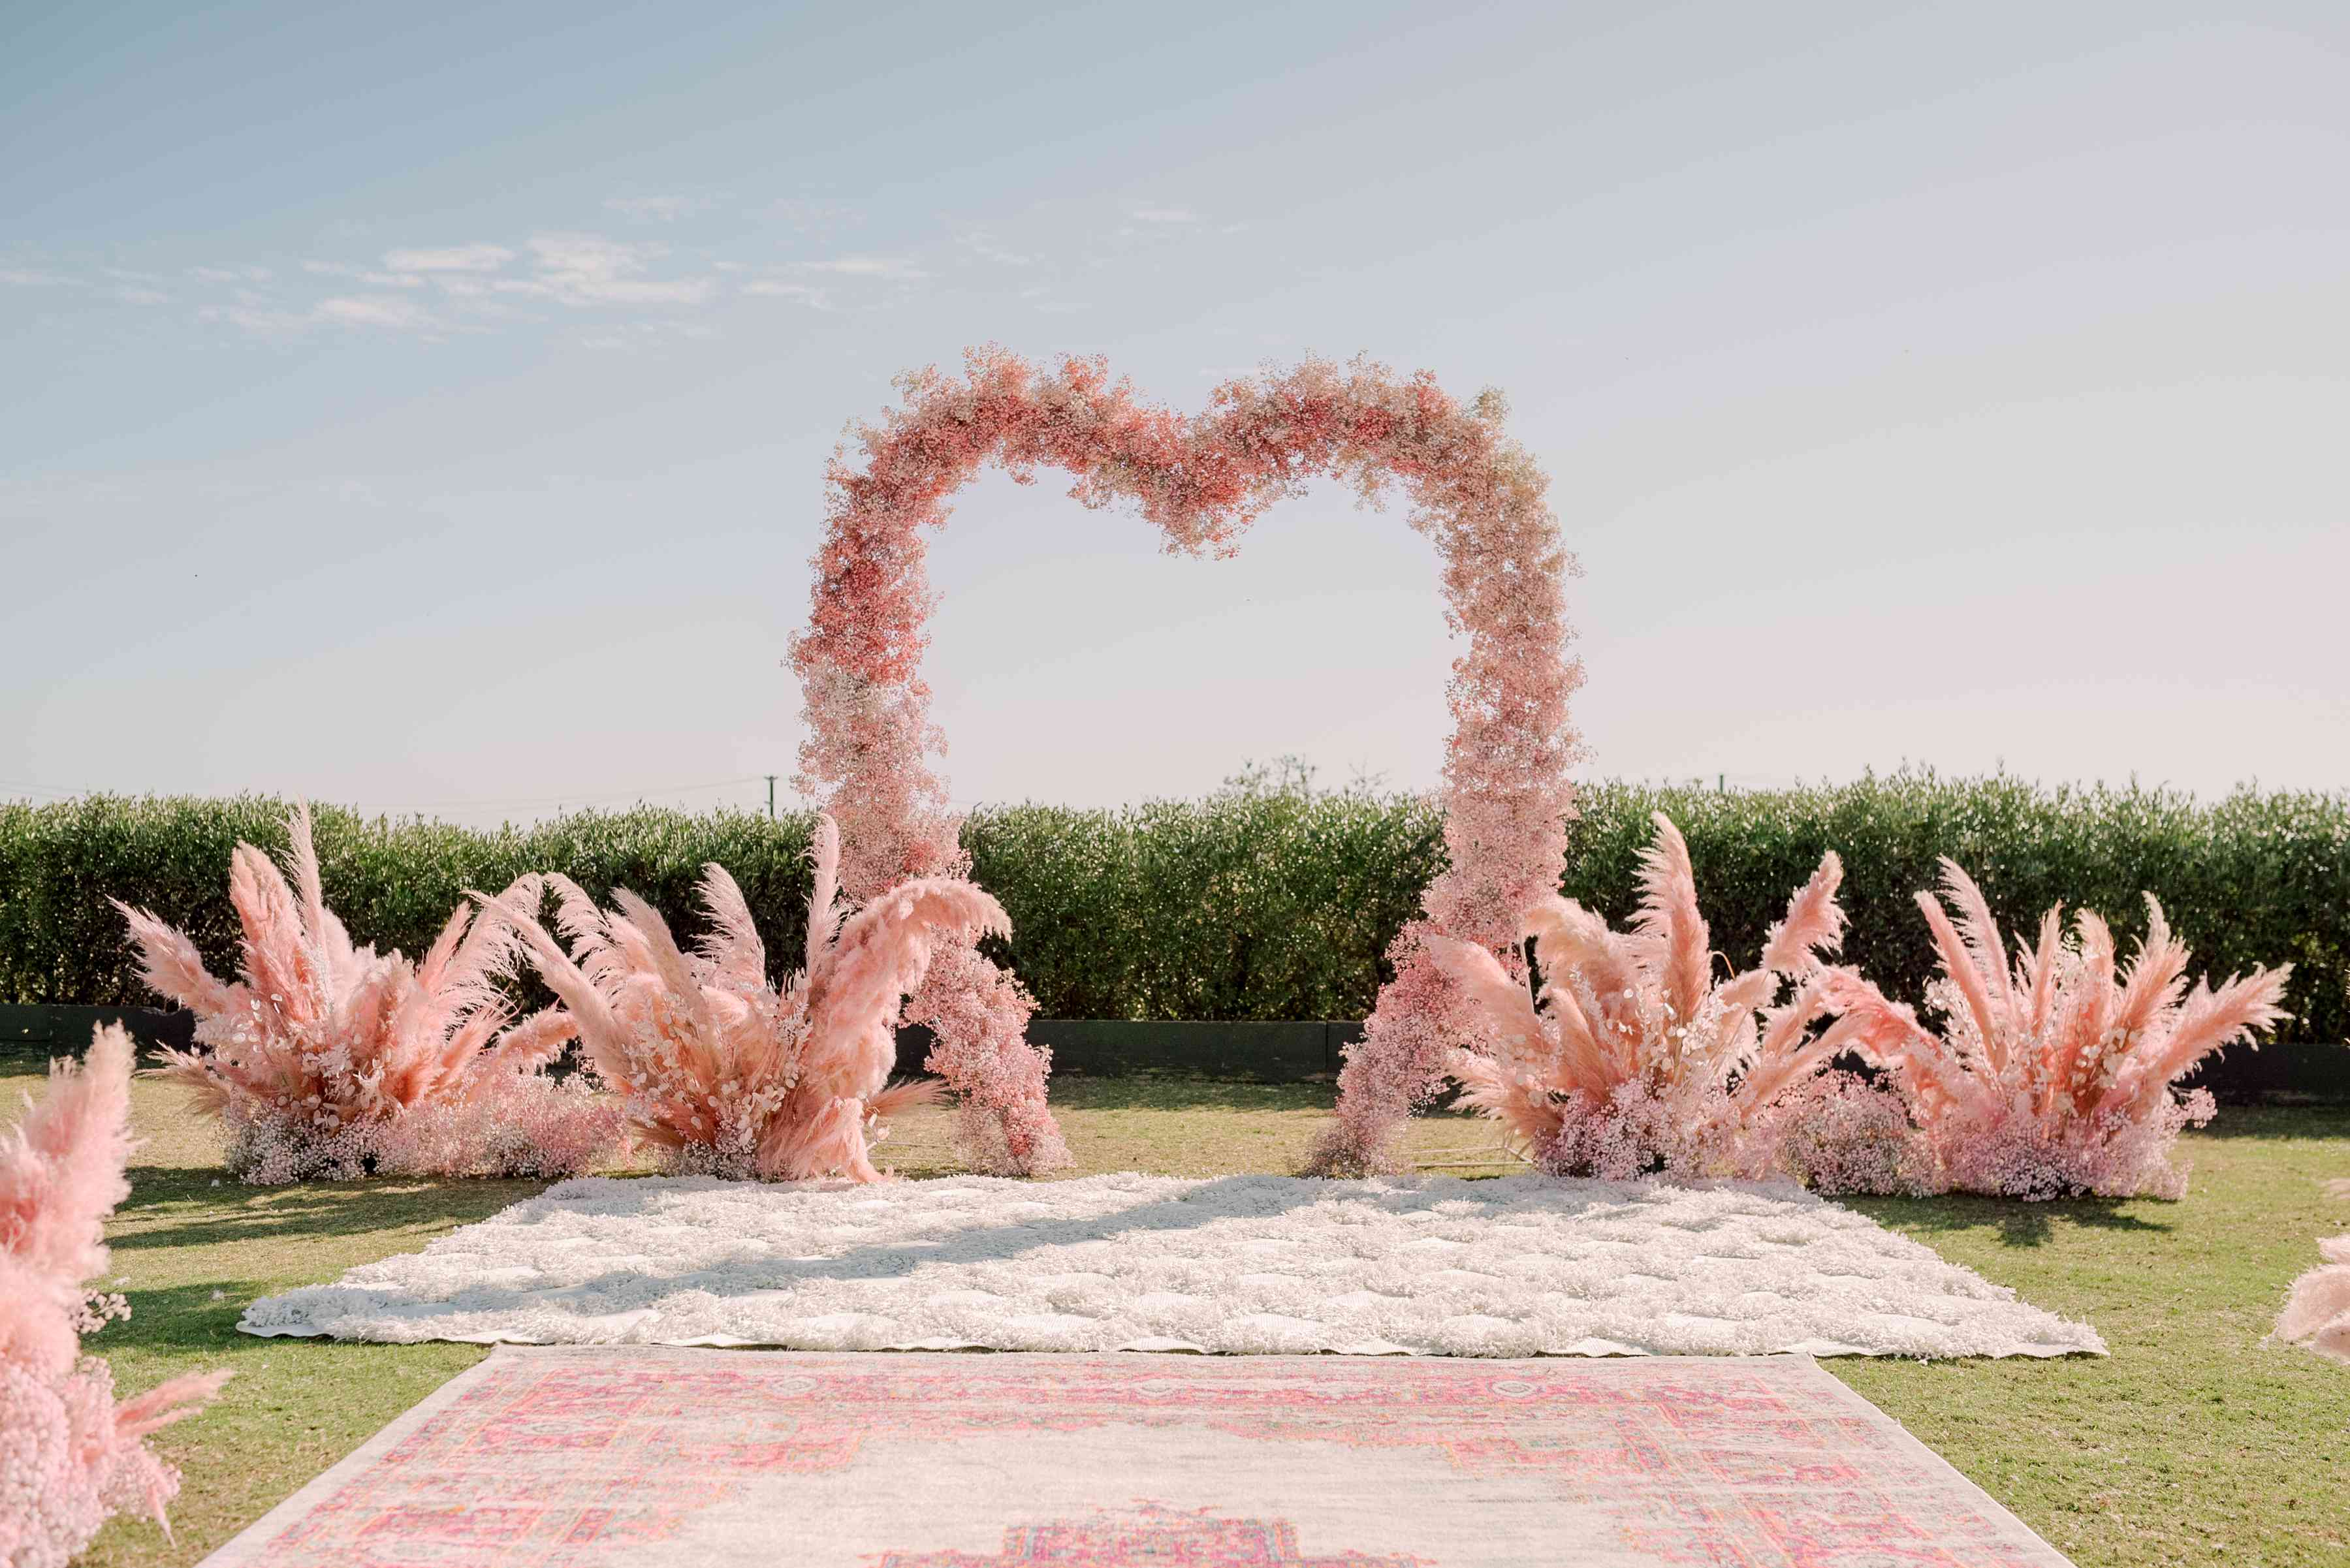 Pink floral heart-shaped ceremony arch surrounded by pink pampas grass